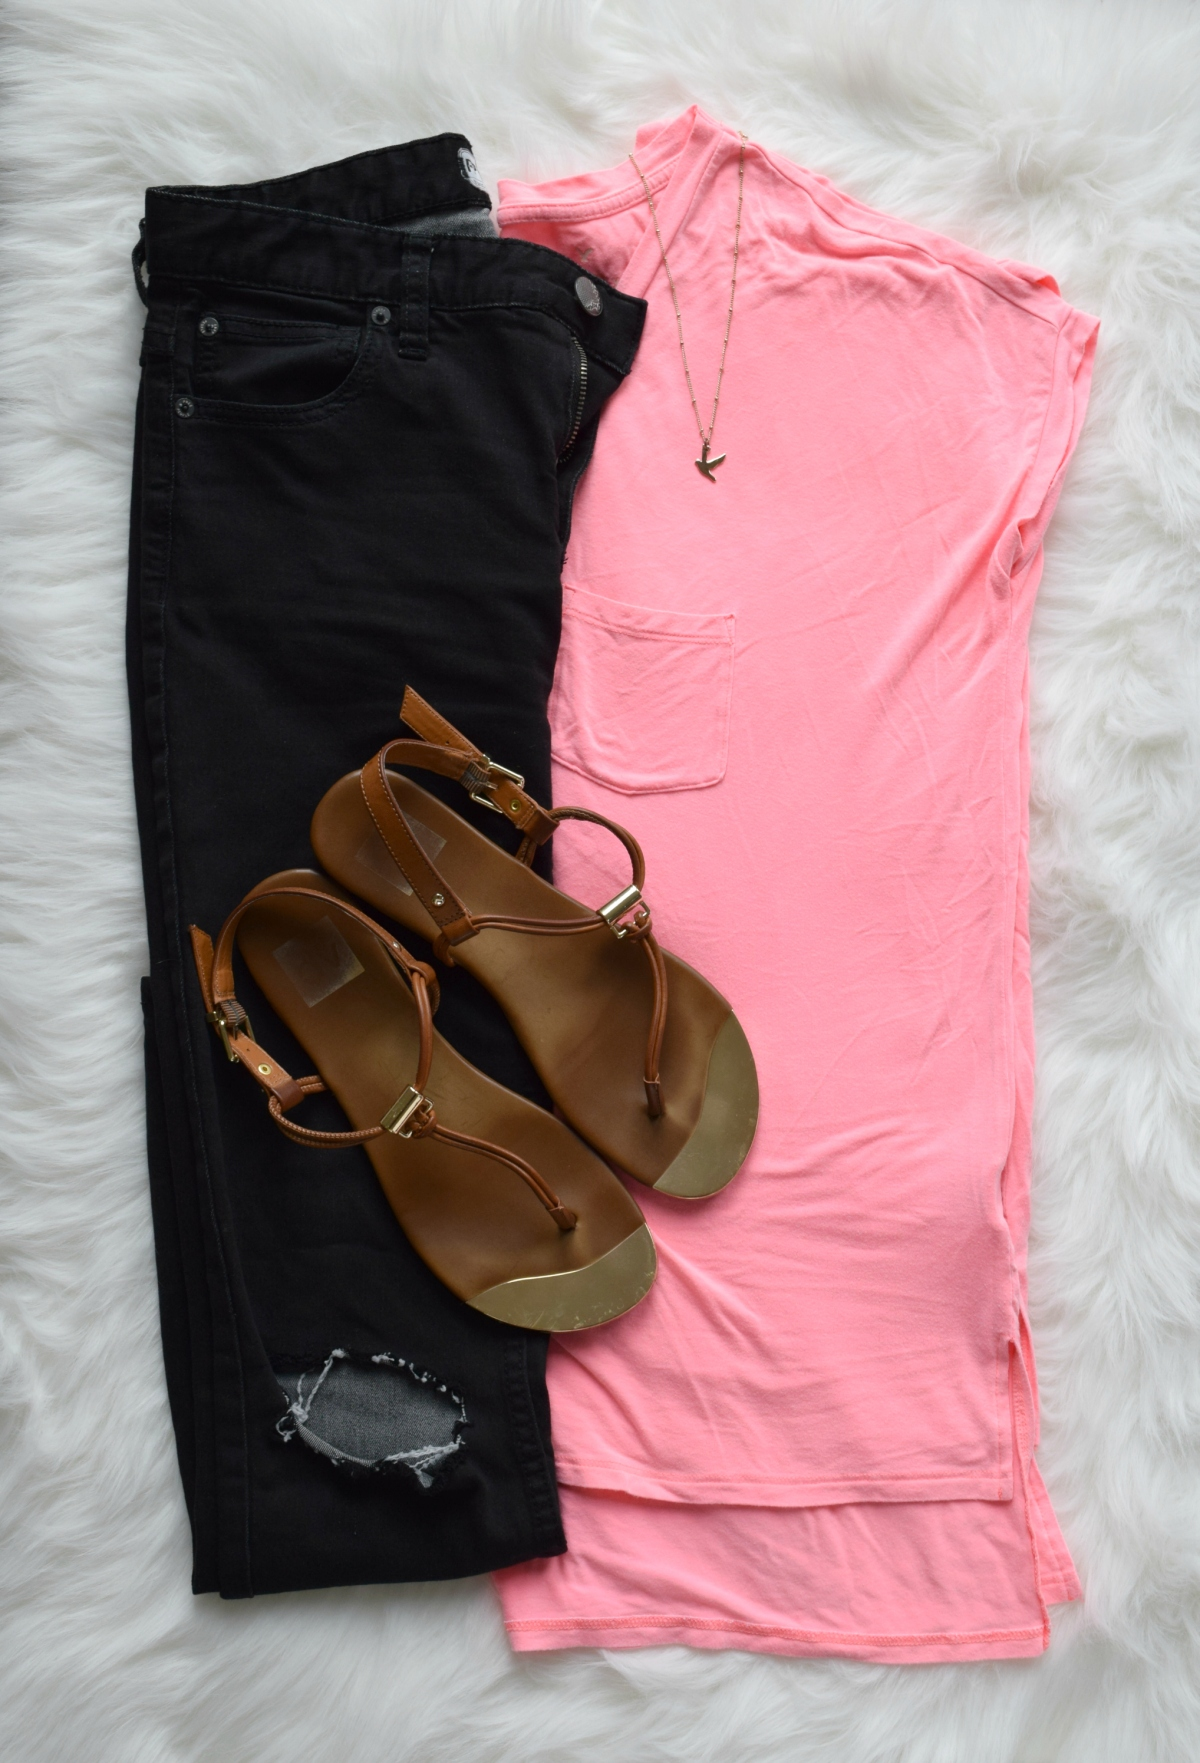 Hot pink and black for a super casual look |www.pearlsandsportsbras.com|